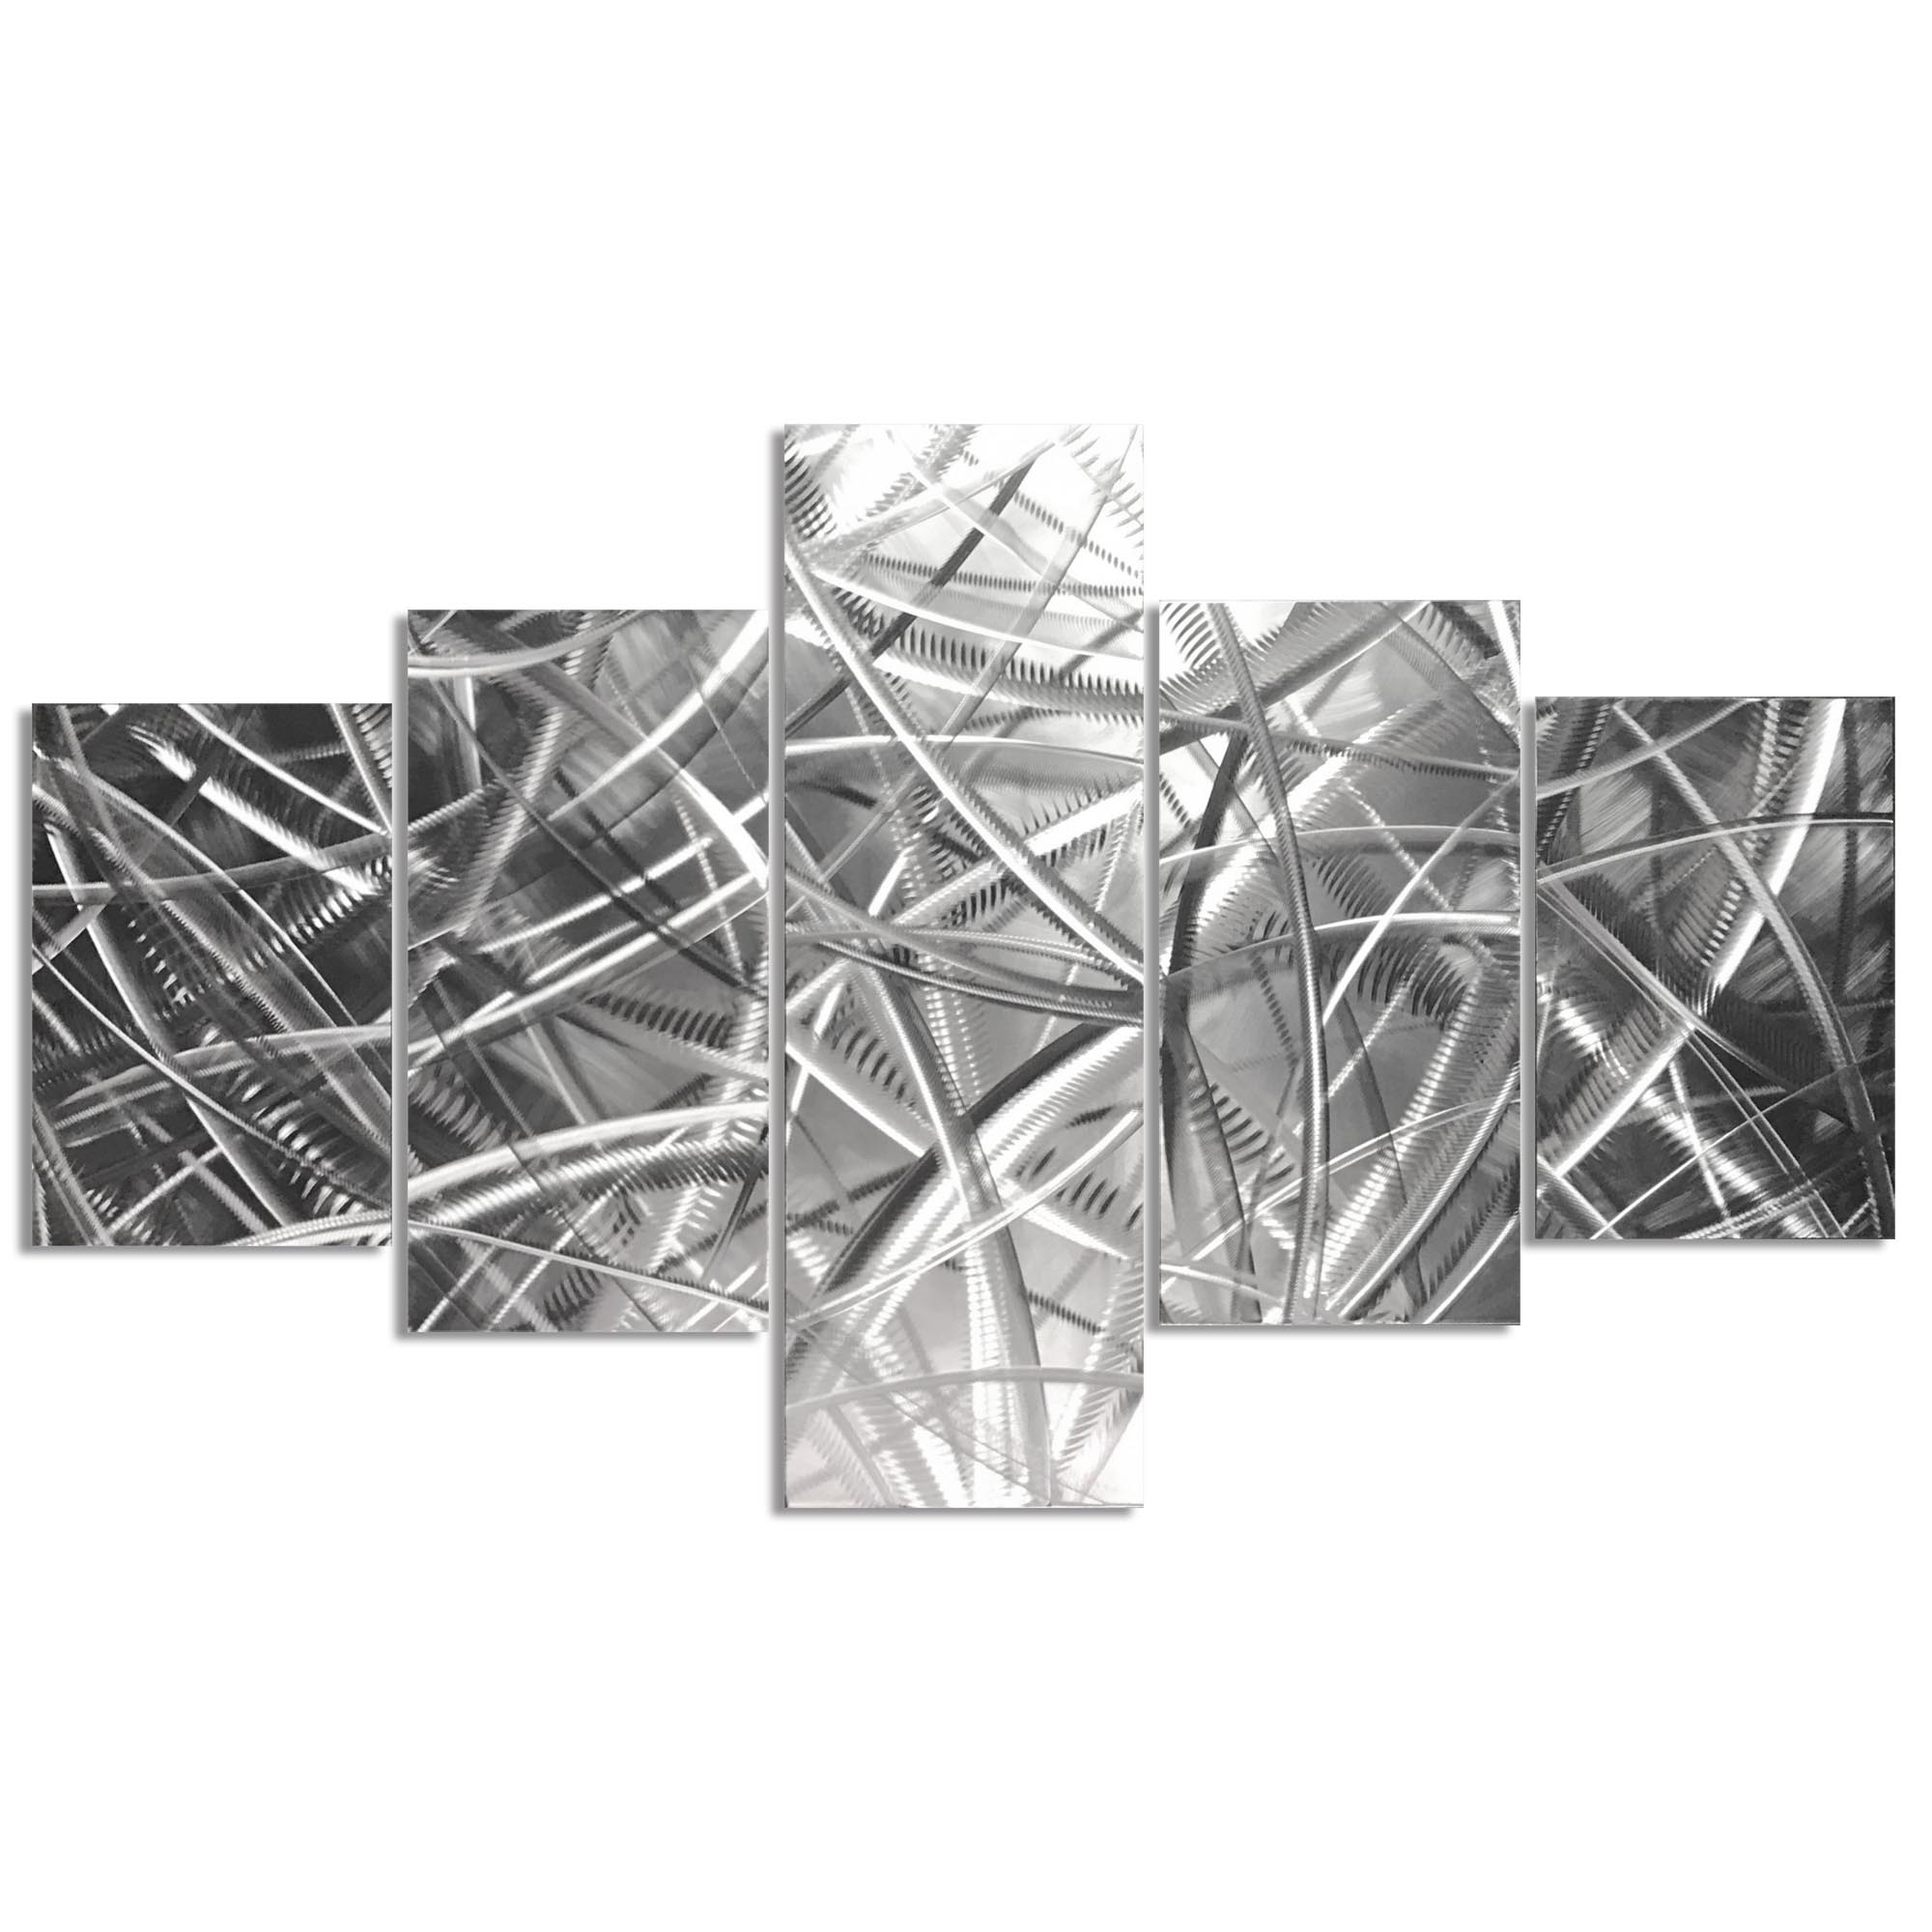 Columnar Fibers 64x36in. Natural Aluminum Abstract Decor